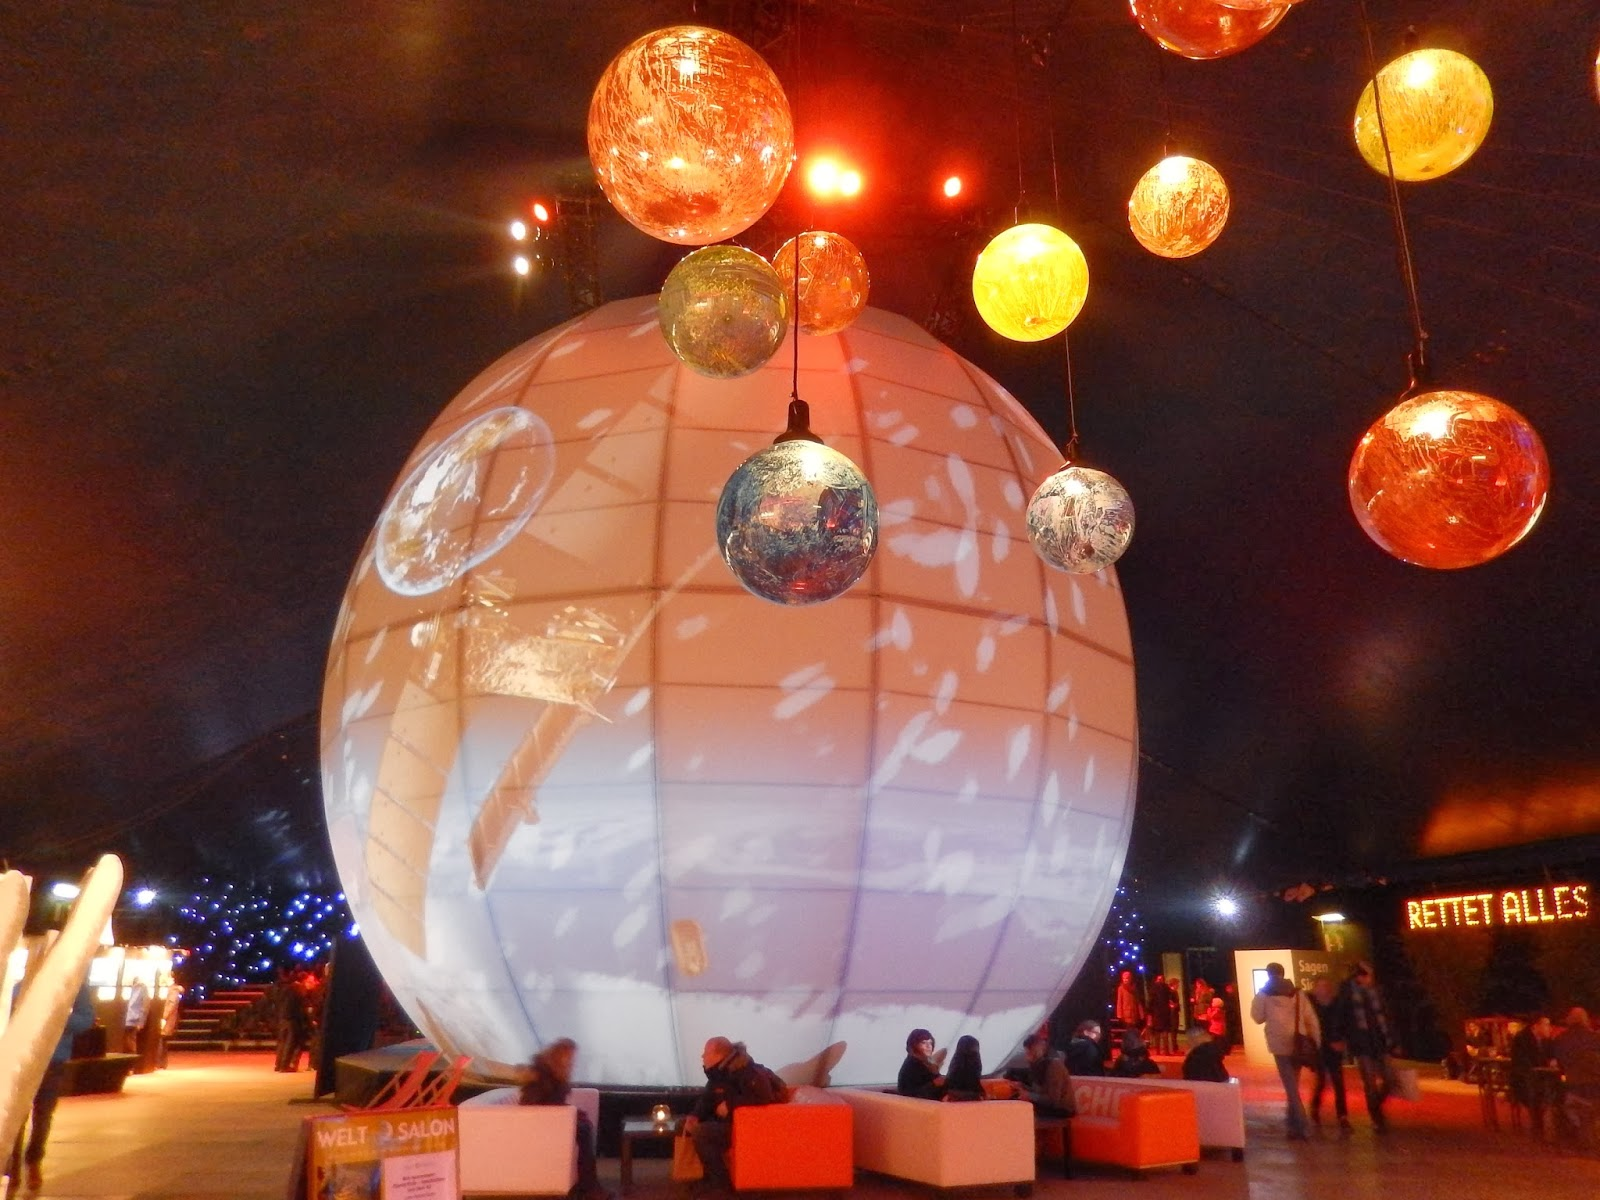 Tollwood Winterfestival Download